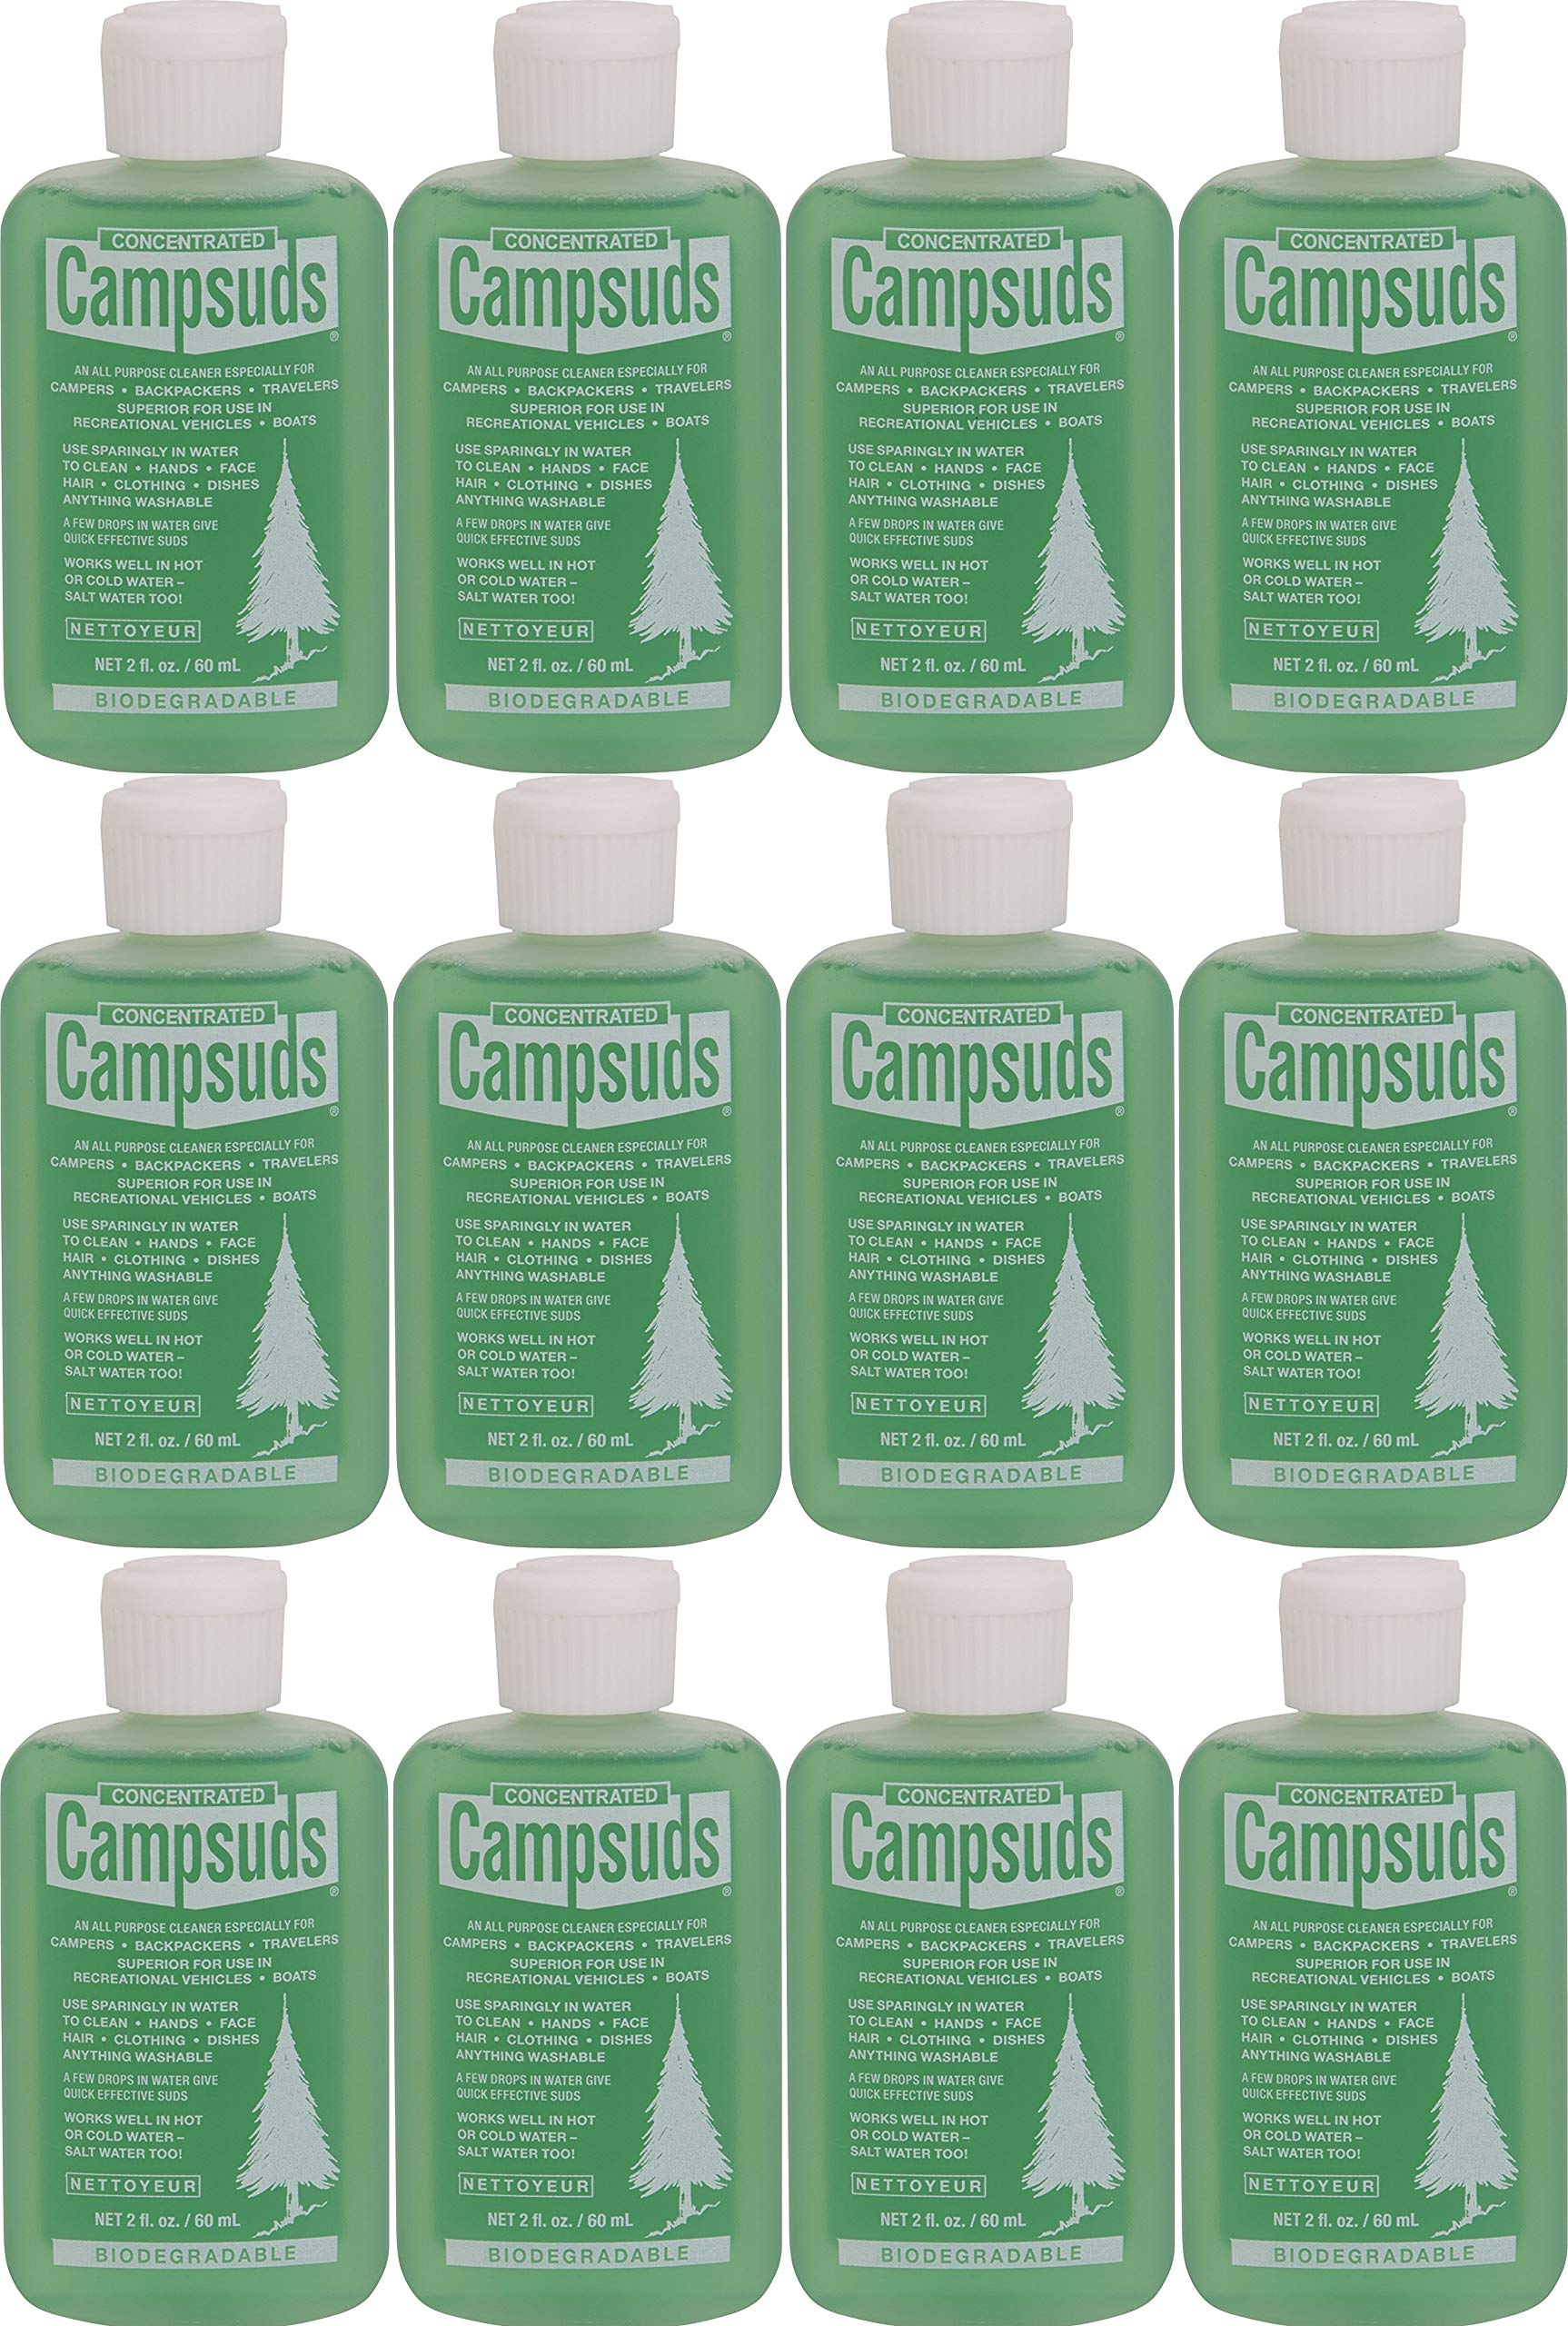 Sierra Dawn Campsuds Outdoor Soap Biodegradable Environmentally Safe All Purpose Cleaner, Camping Hiking Backpacking Travel Camp, Multipurpose Dishes Shower Hand Shampoo (2-Ounce, 12 Bottles)